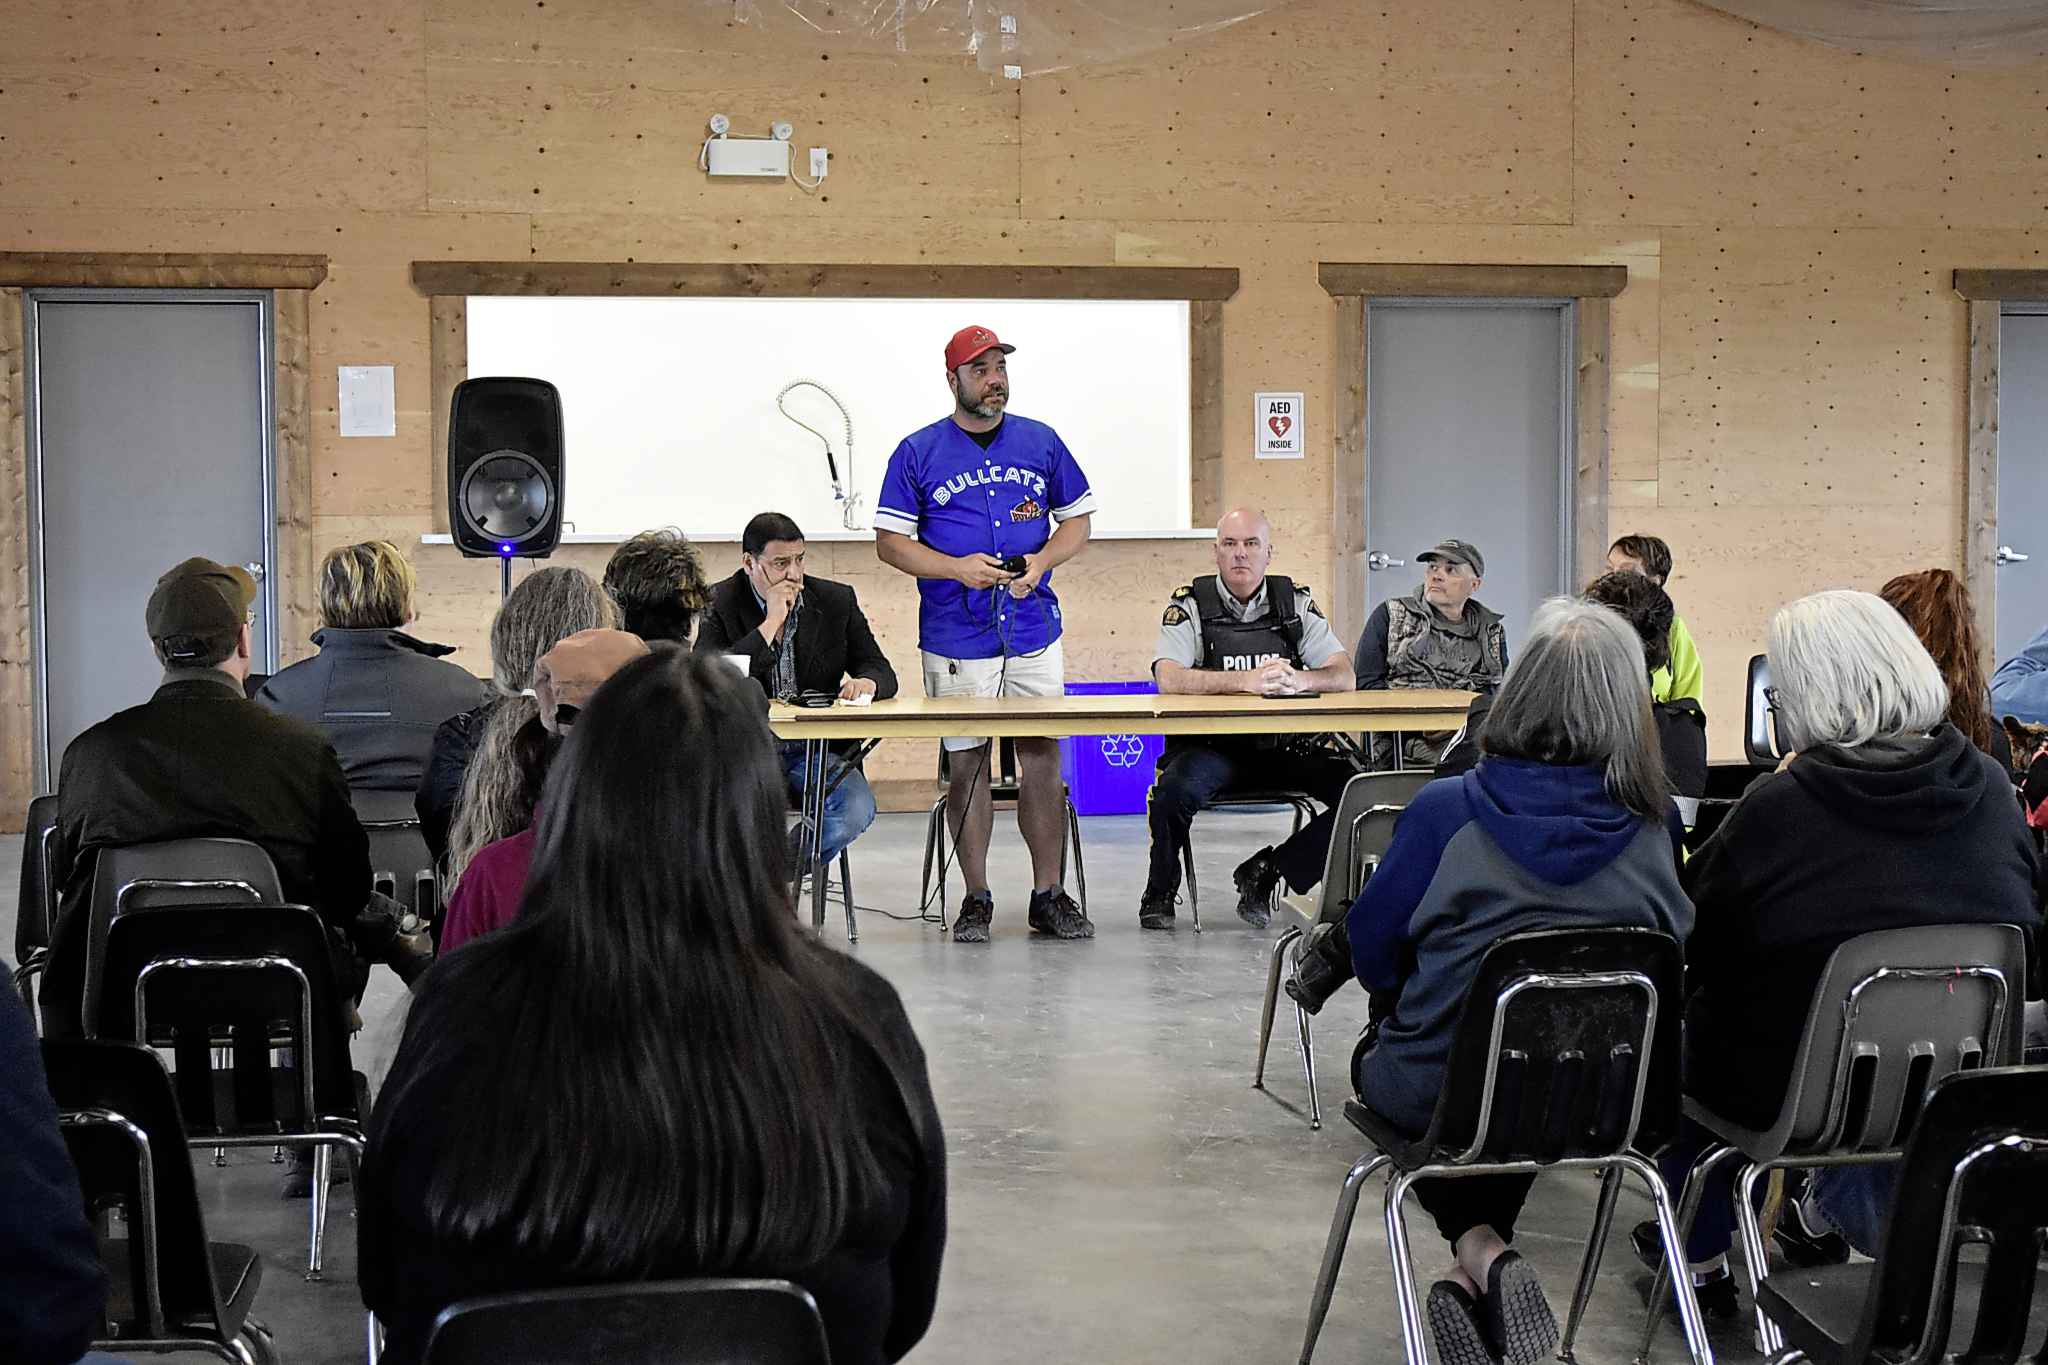 Gillam Mayor Dwayne Forman speaks at a town meeting Wednesday evening after RCMP discovered remains they believe are those of Kam McLeod and Bryer Schmegelsky.